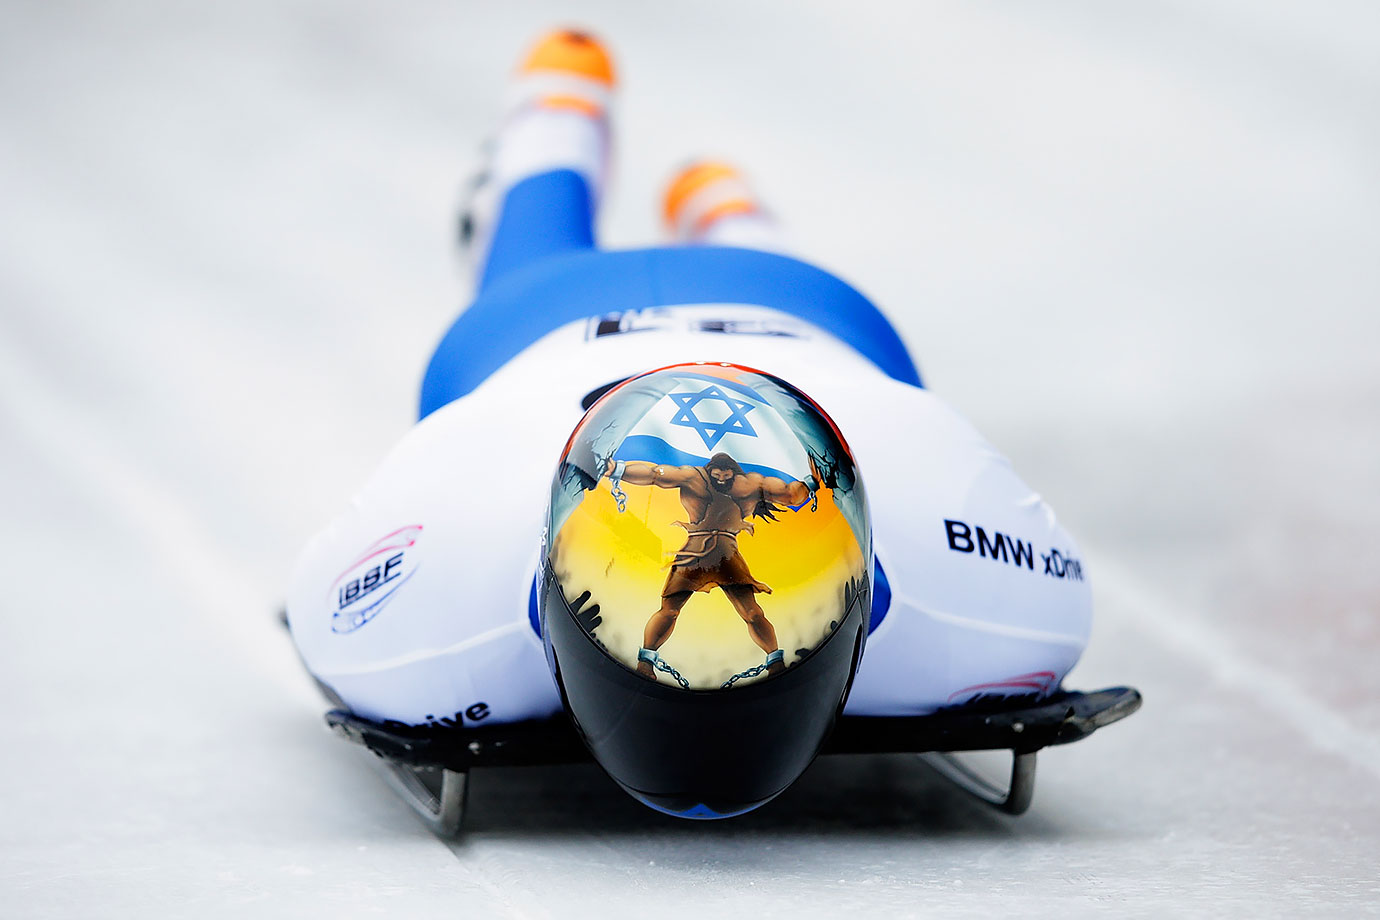 Israel's Adam Edelman completes his second run of the Men's Skeleton during Day 4 of the IBSF World Championships in Innsbruck, Austria.